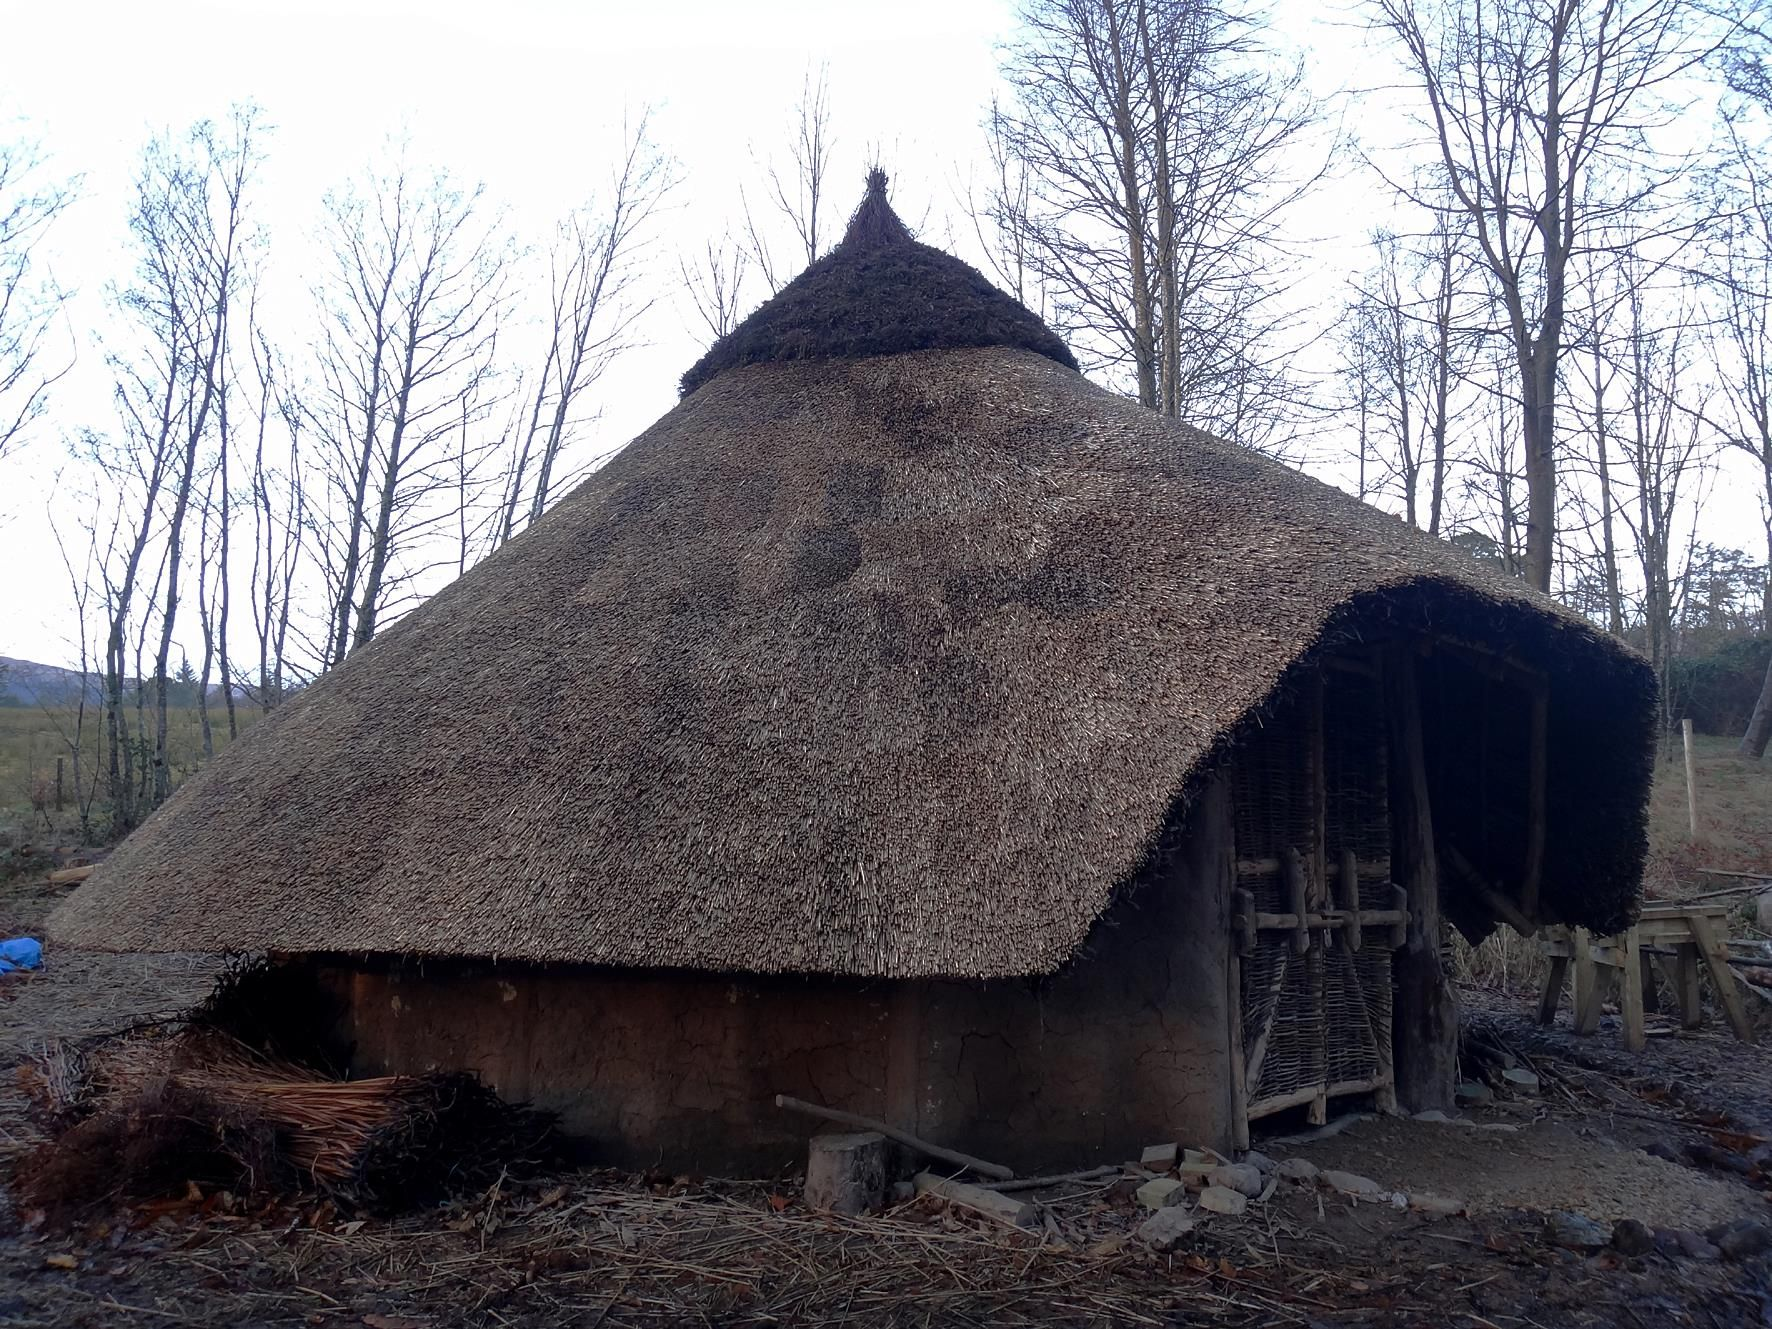 The Bronze Age roundhouse at Brodick Castle on Arran